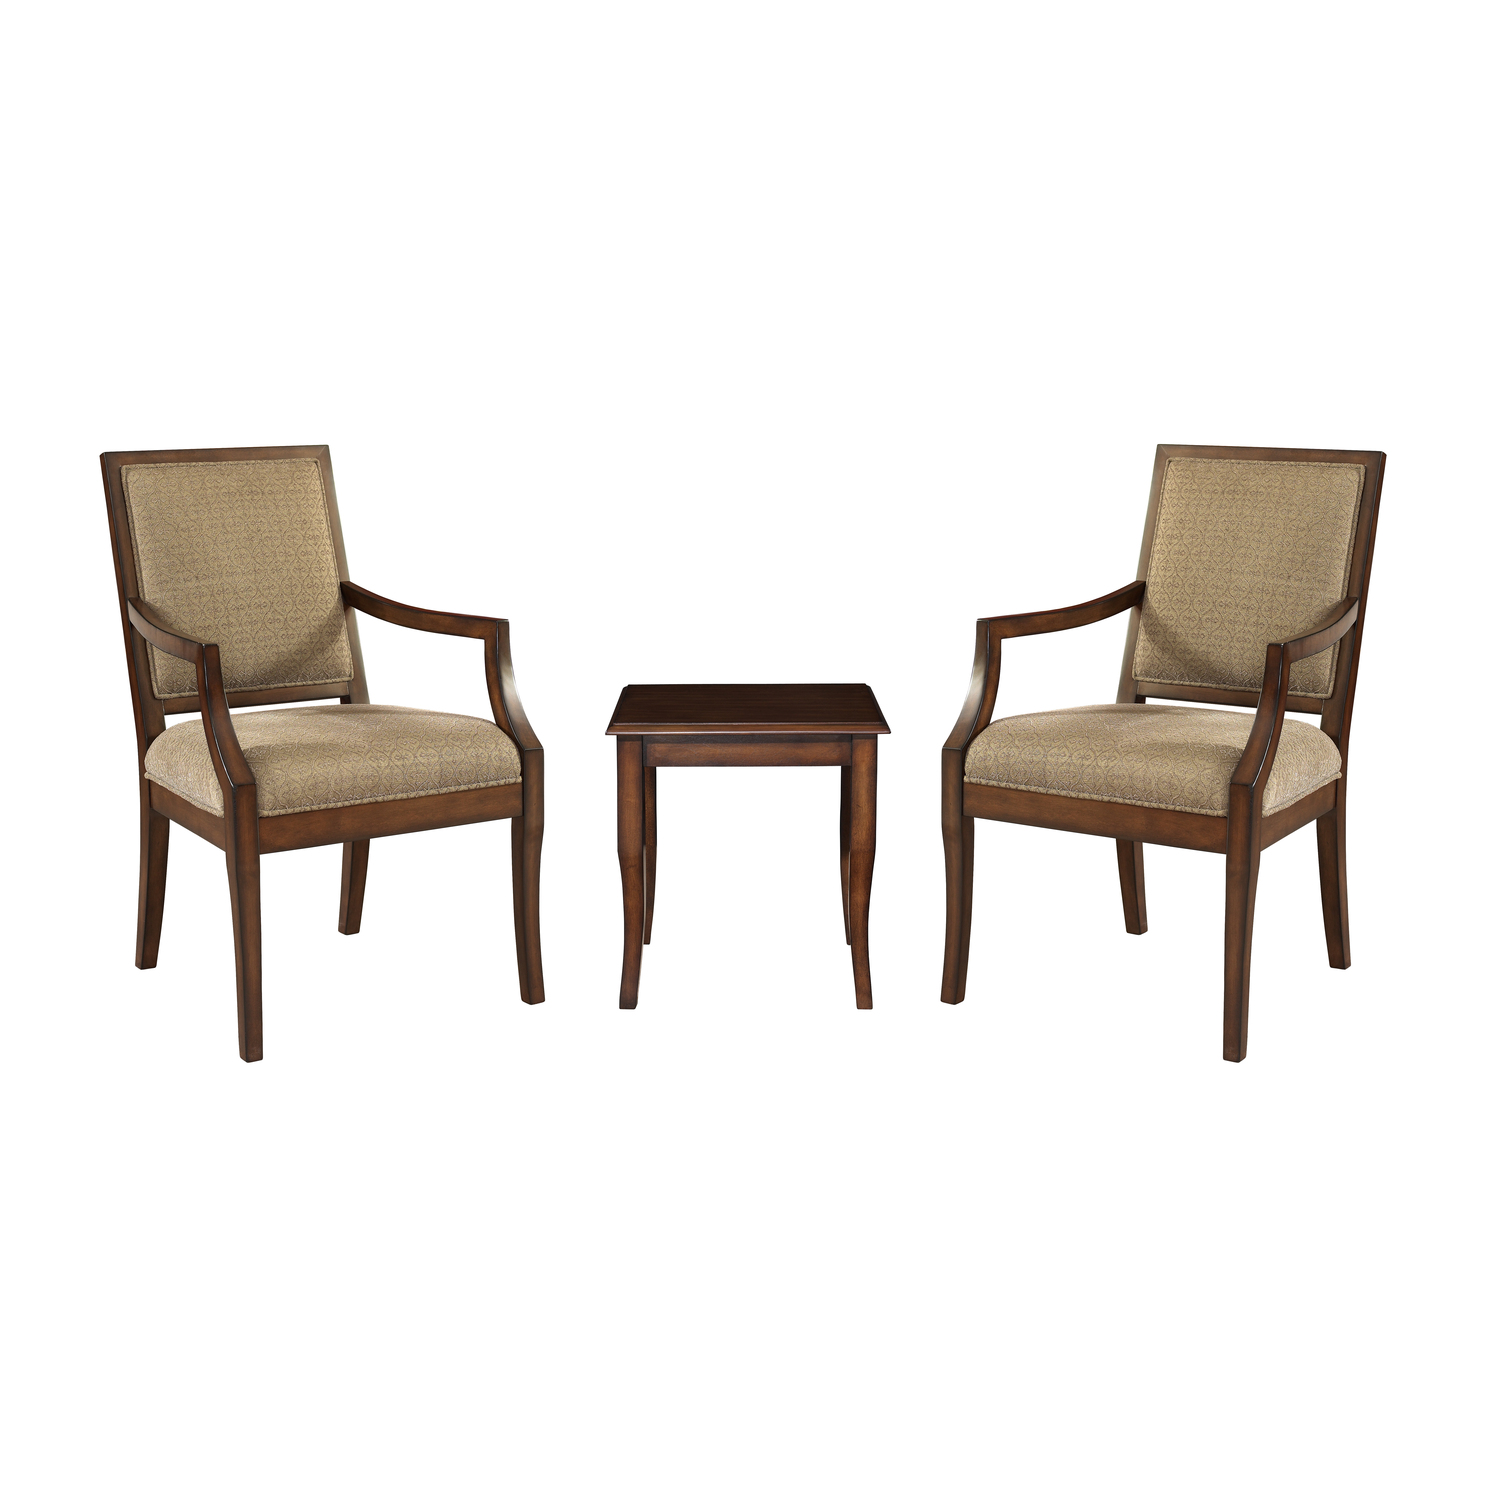 2 accent chairs and table set big joe brio chair powell 3 pc rect back with 1 light